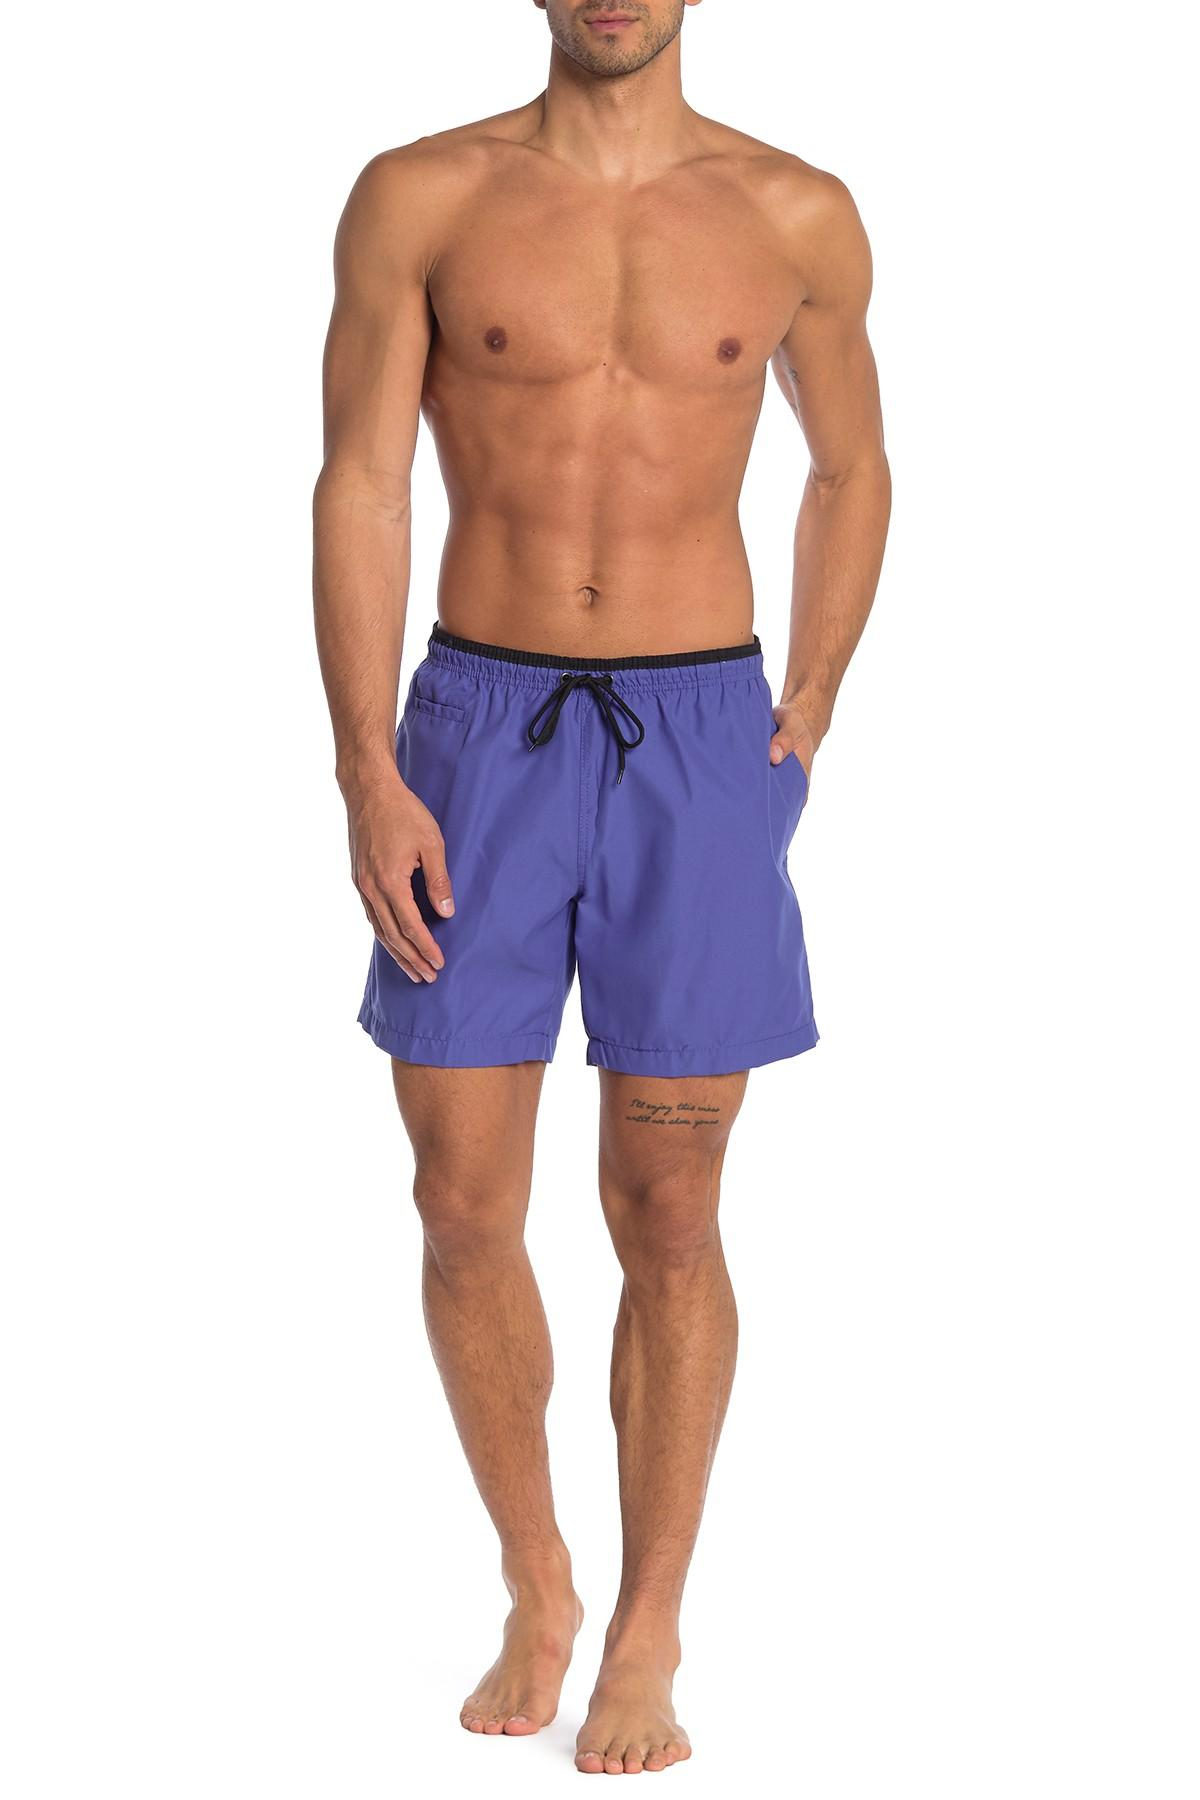 fff831eddd Lyst - TRUNKS SURF AND SWIM CO Contrast Sano Swim Shorts in Blue for Men